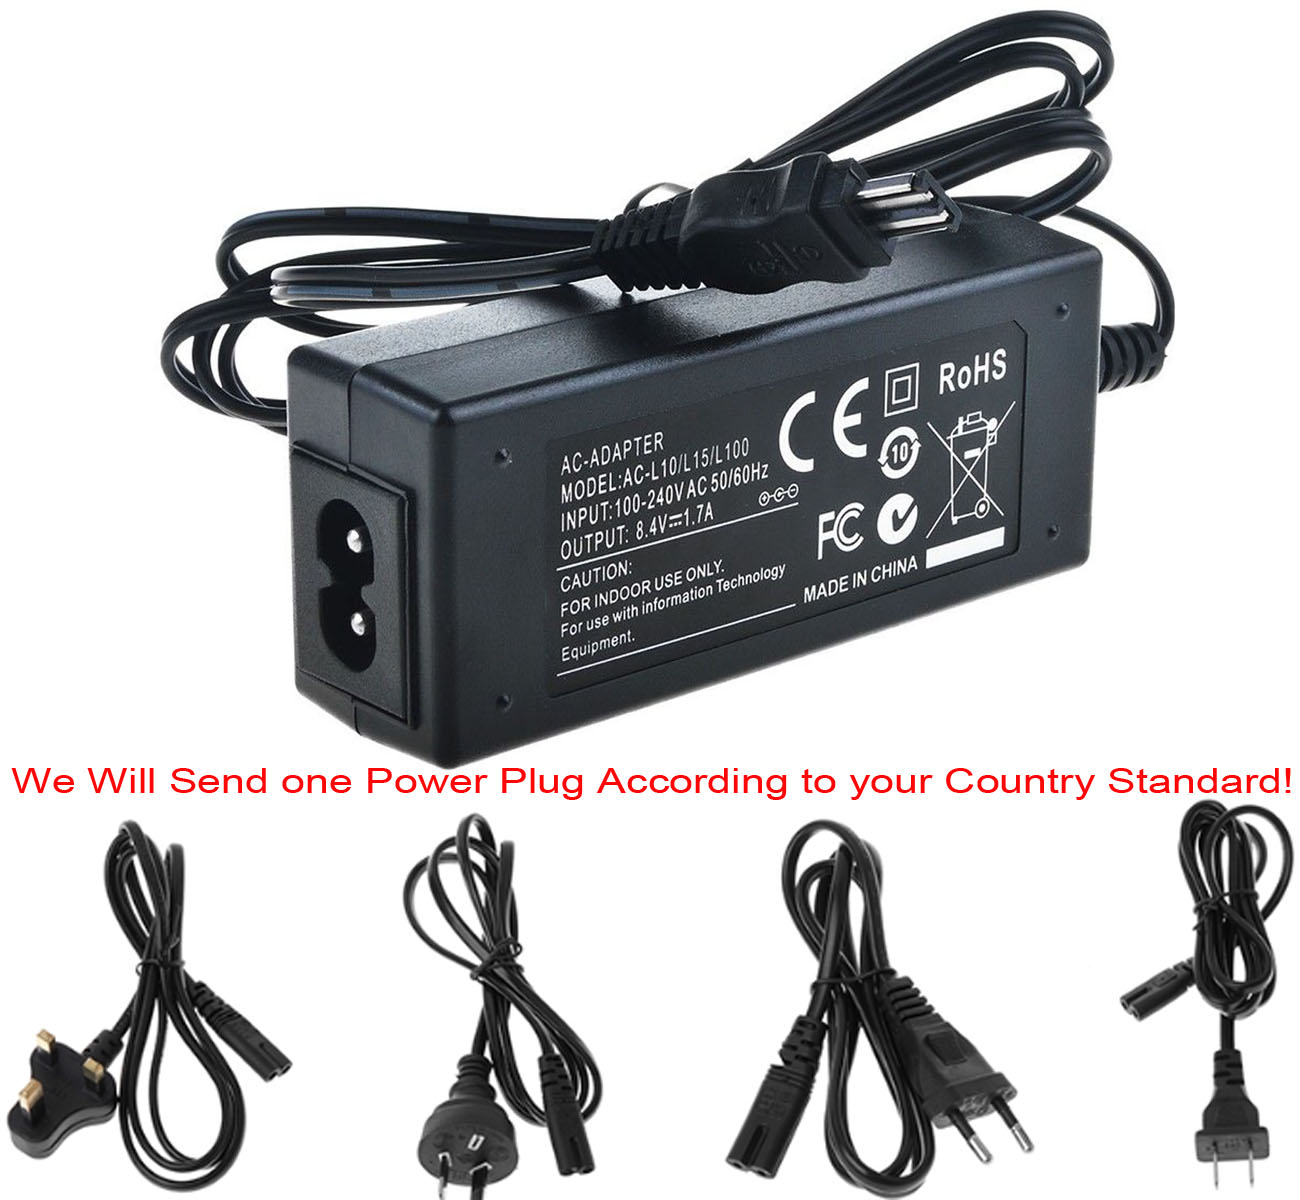 CCD-TR515 USB Power Adapter Charger for Sony CCD-TR311 CCD-TR511 CCD-TR516 Handycam Camcorder CCD-TR512